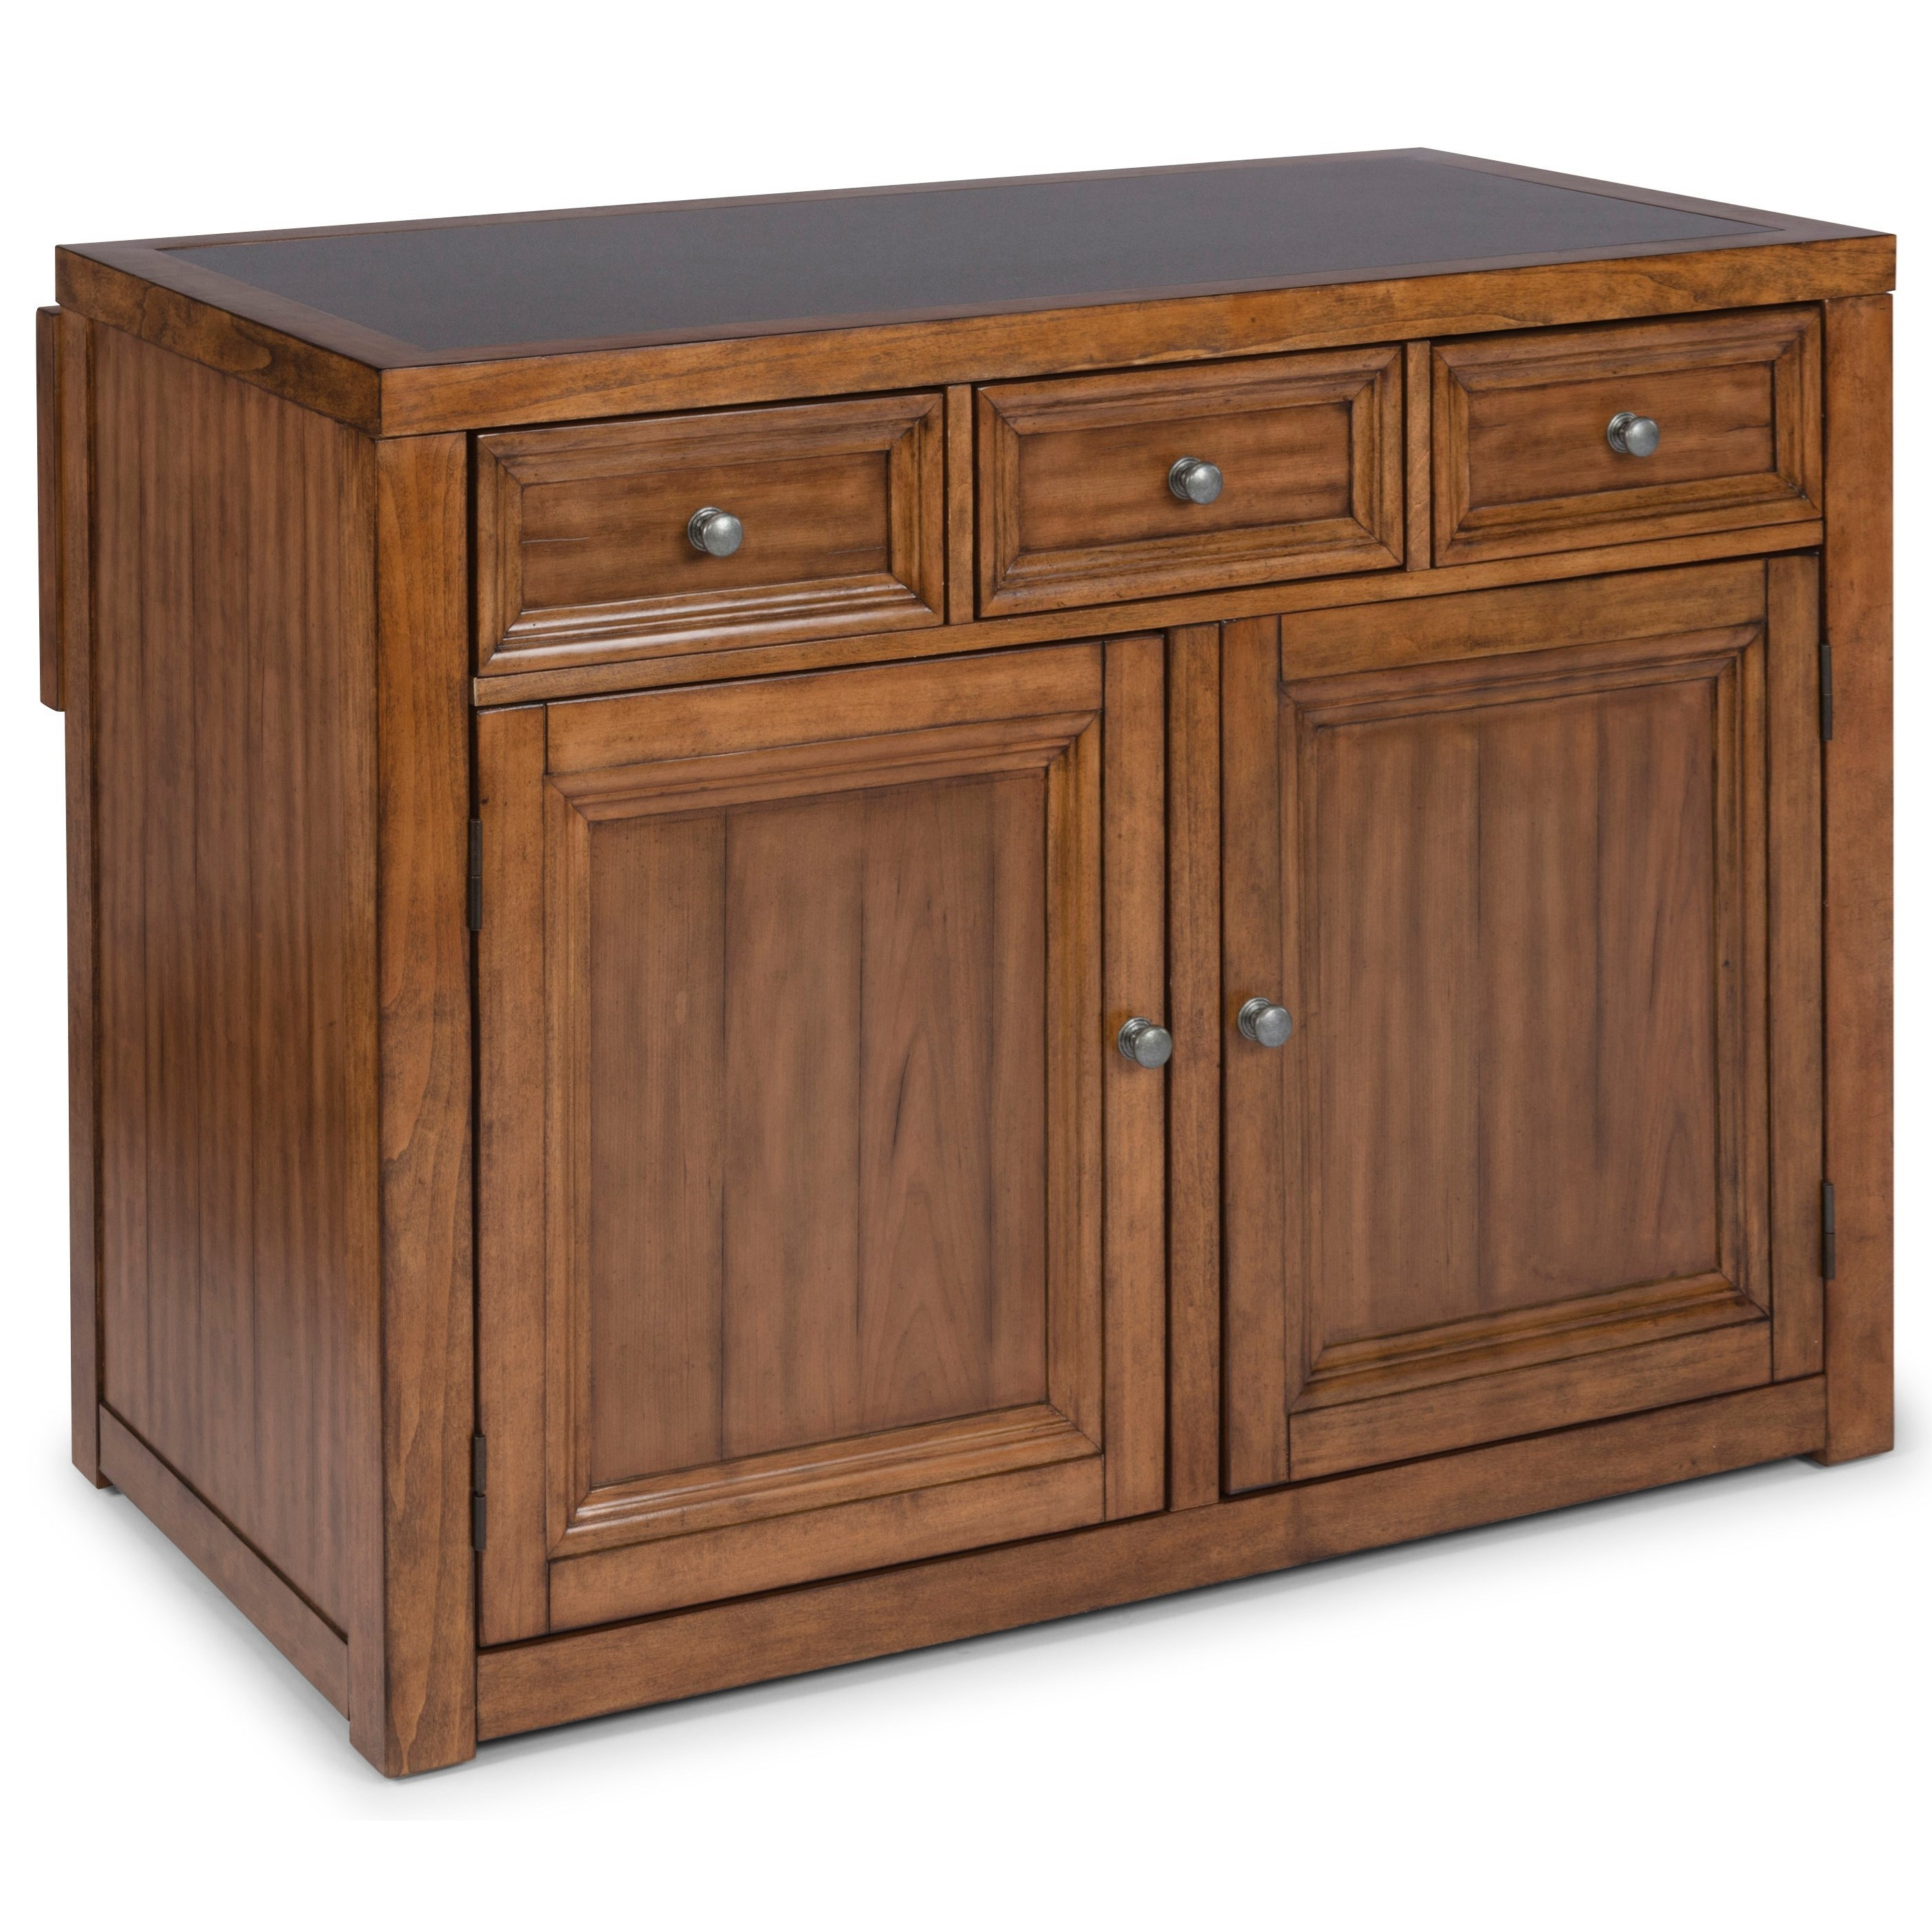 Sedona Kitchen Island by homestyles at Value City Furniture